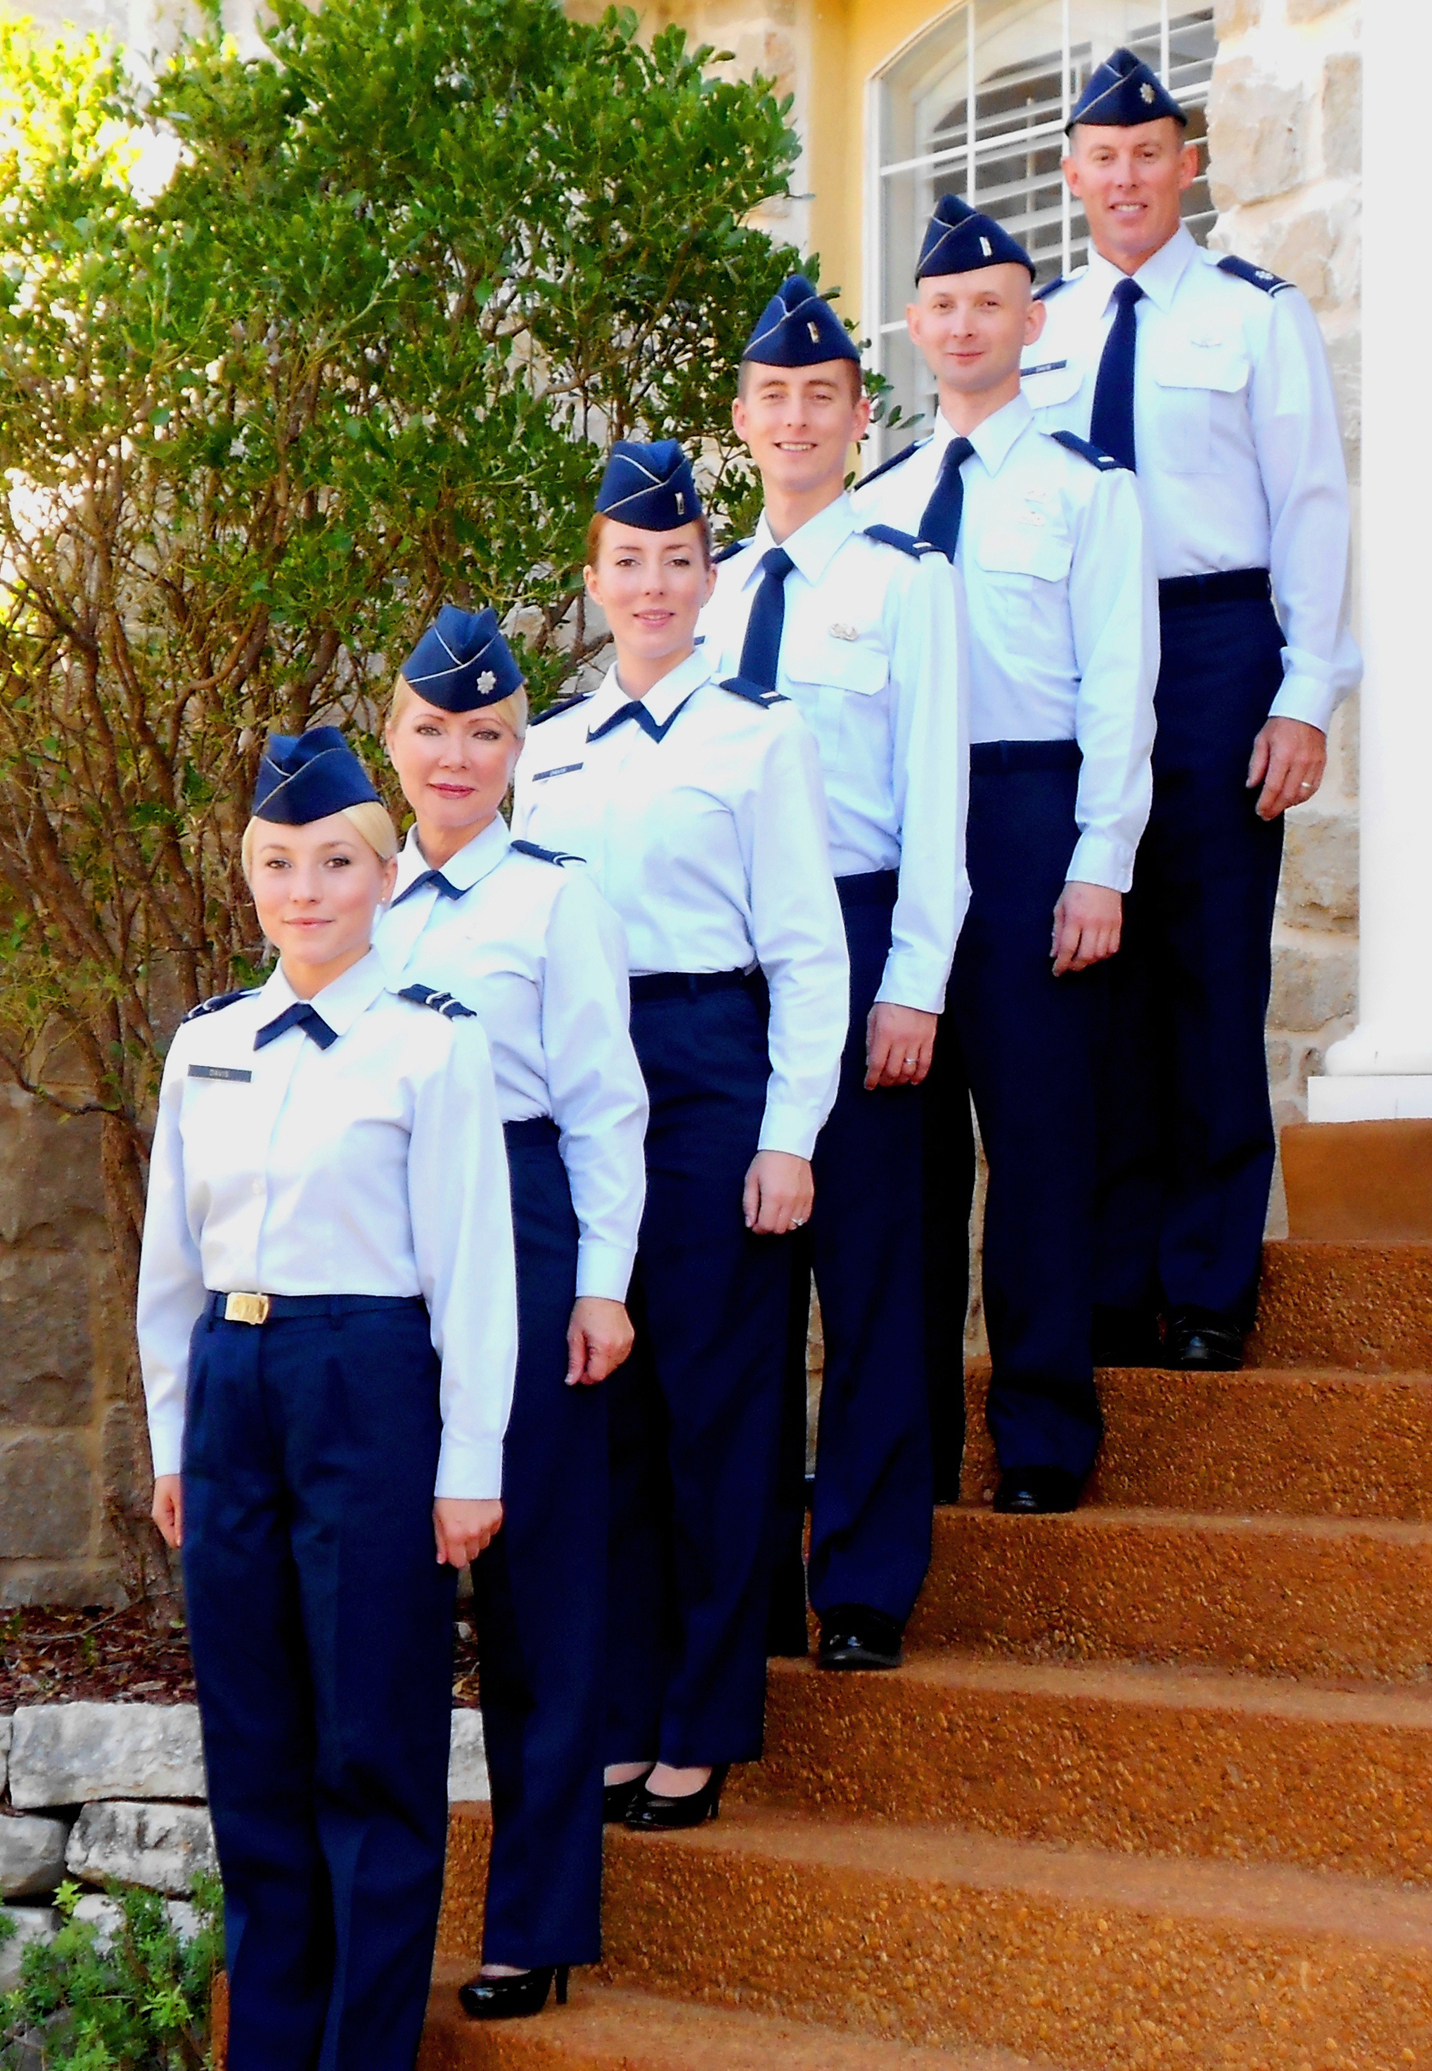 2019 year style- Air officer force blues uniform pictures